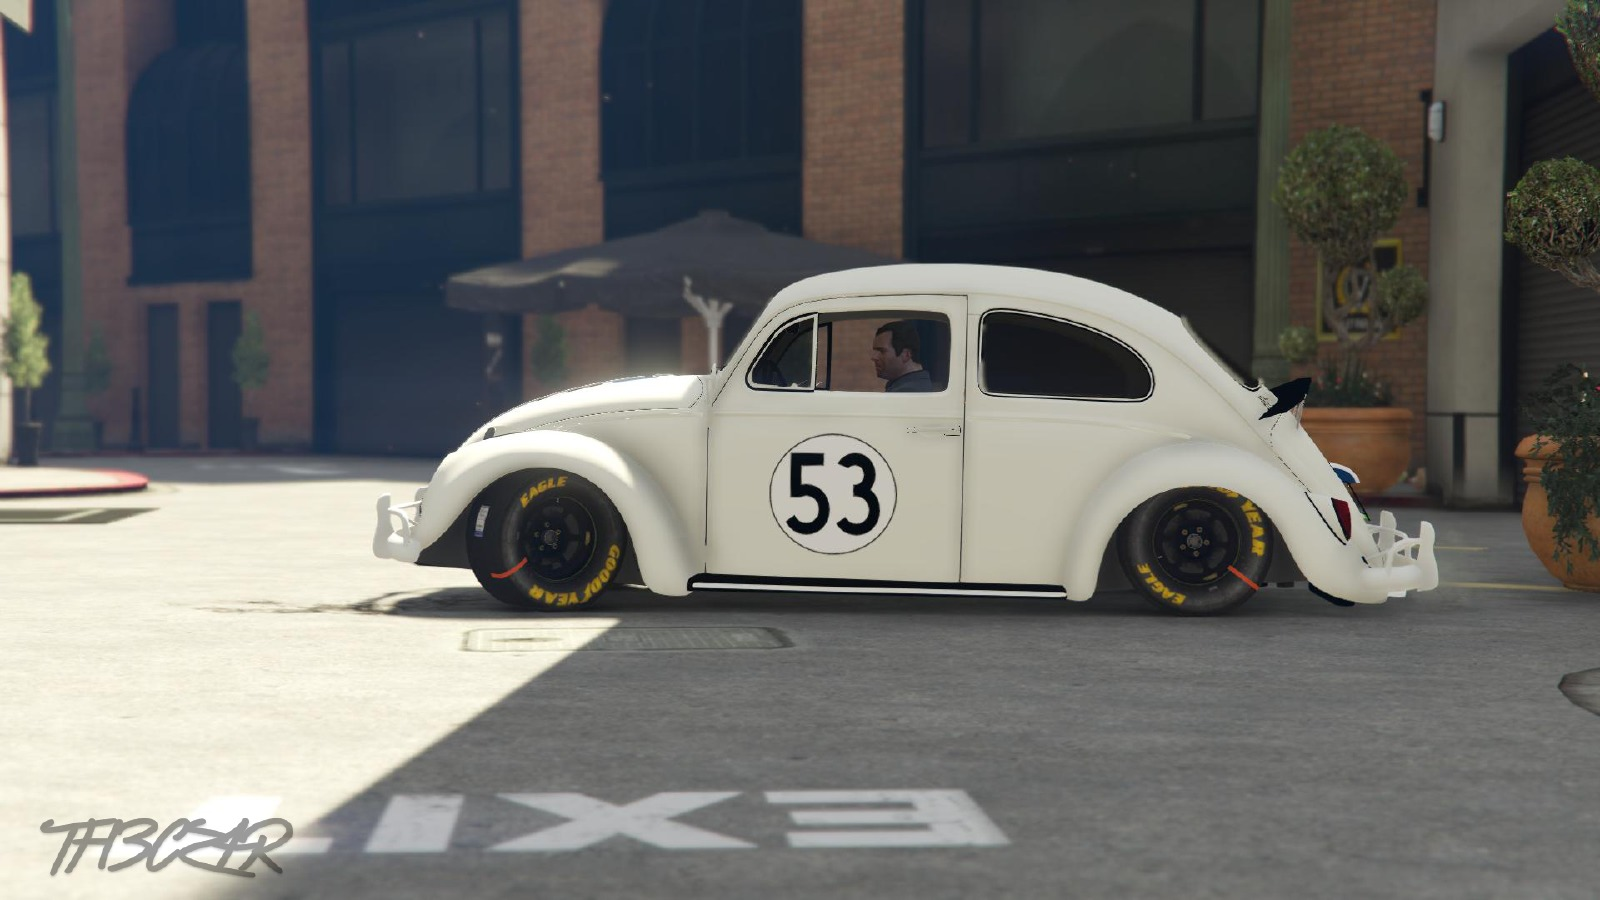 Herbie Coccinelle Fully Loaded Vehicules Pour Gta V